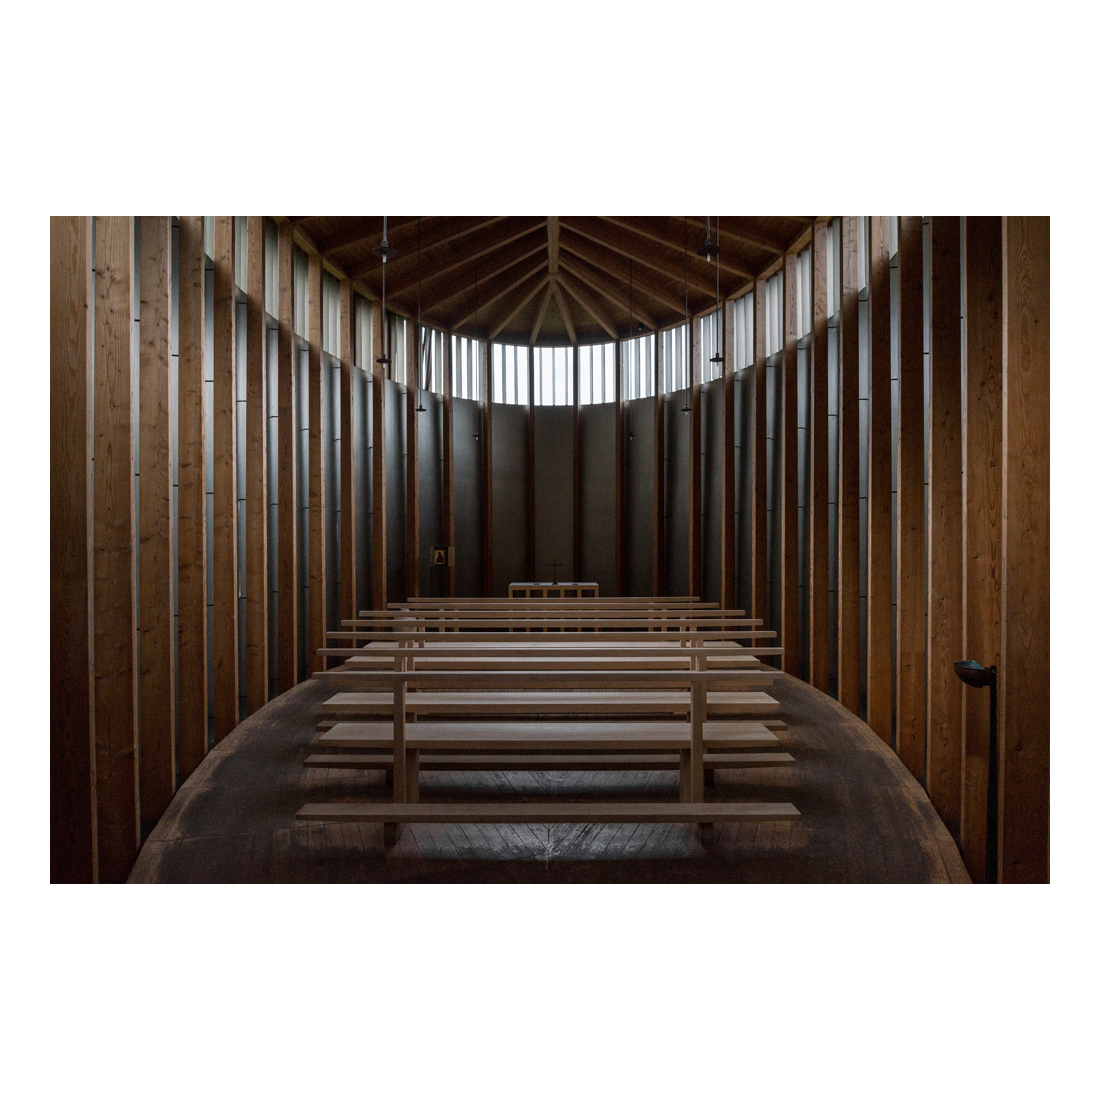 PeterZumthor_Kapel1_©JasonSlabbynck